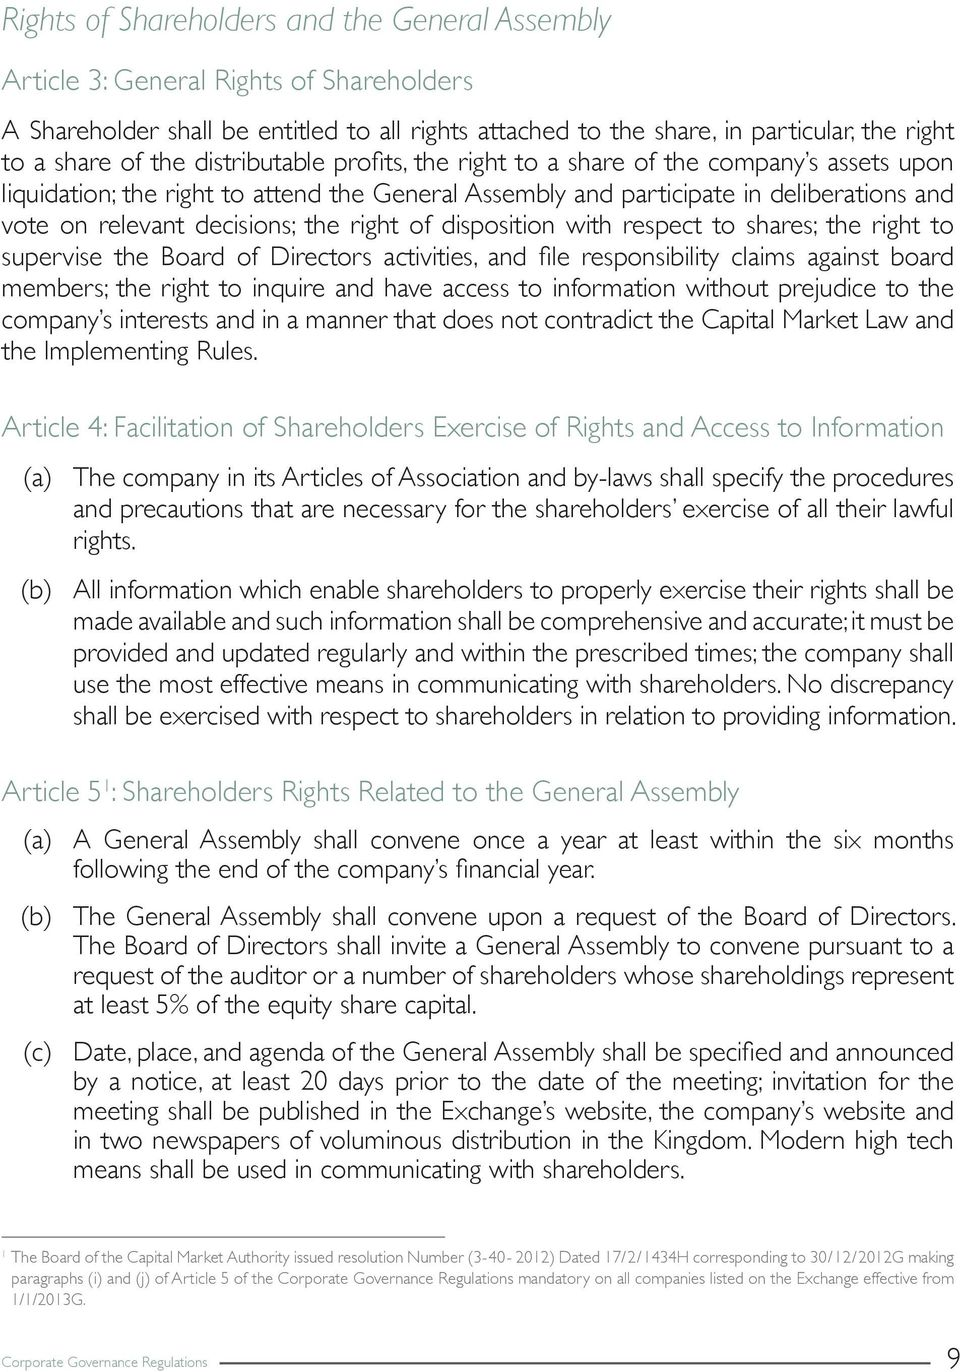 right of disposition with respect to shares; the right to supervise the Board of Directors activities, and file responsibility claims against board members; the right to inquire and have access to